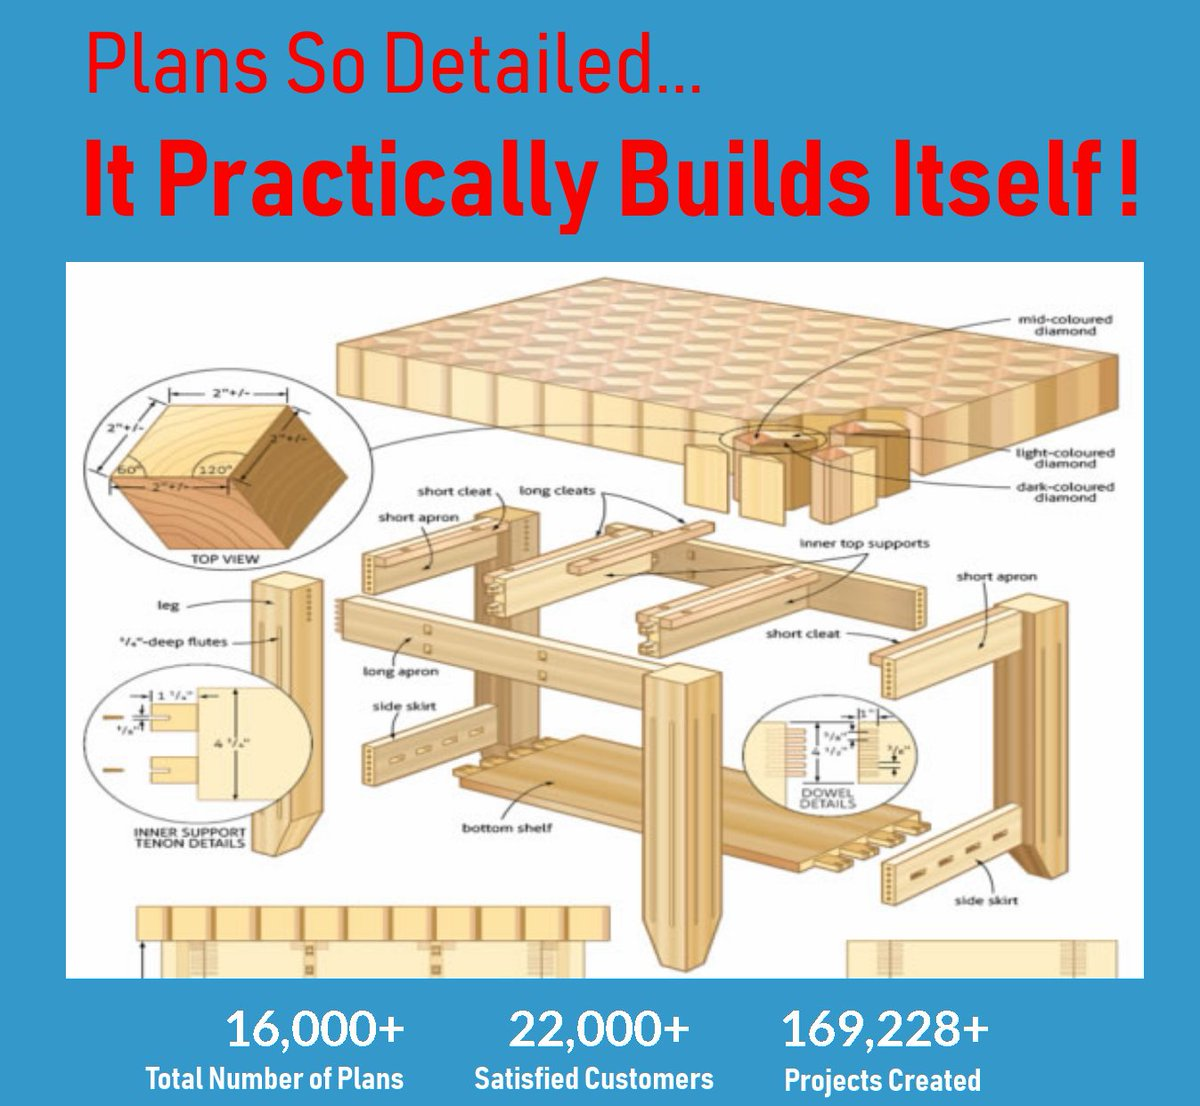 16,000 Plans + Bonus + LIFETIME membership.Get it Here: https://t.co/KzpKbRyCEY  #Carpenters #Toolbox #woodworking #woodworker #carpentry #Joinery #cabinetry #Woodturning #homeimprovement #homerenovation #Cabinet #crafts #Joinery #deck #HandmadeHour #vagex https://t.co/RAdabi9fxM https://t.co/NixPEj5ZO0